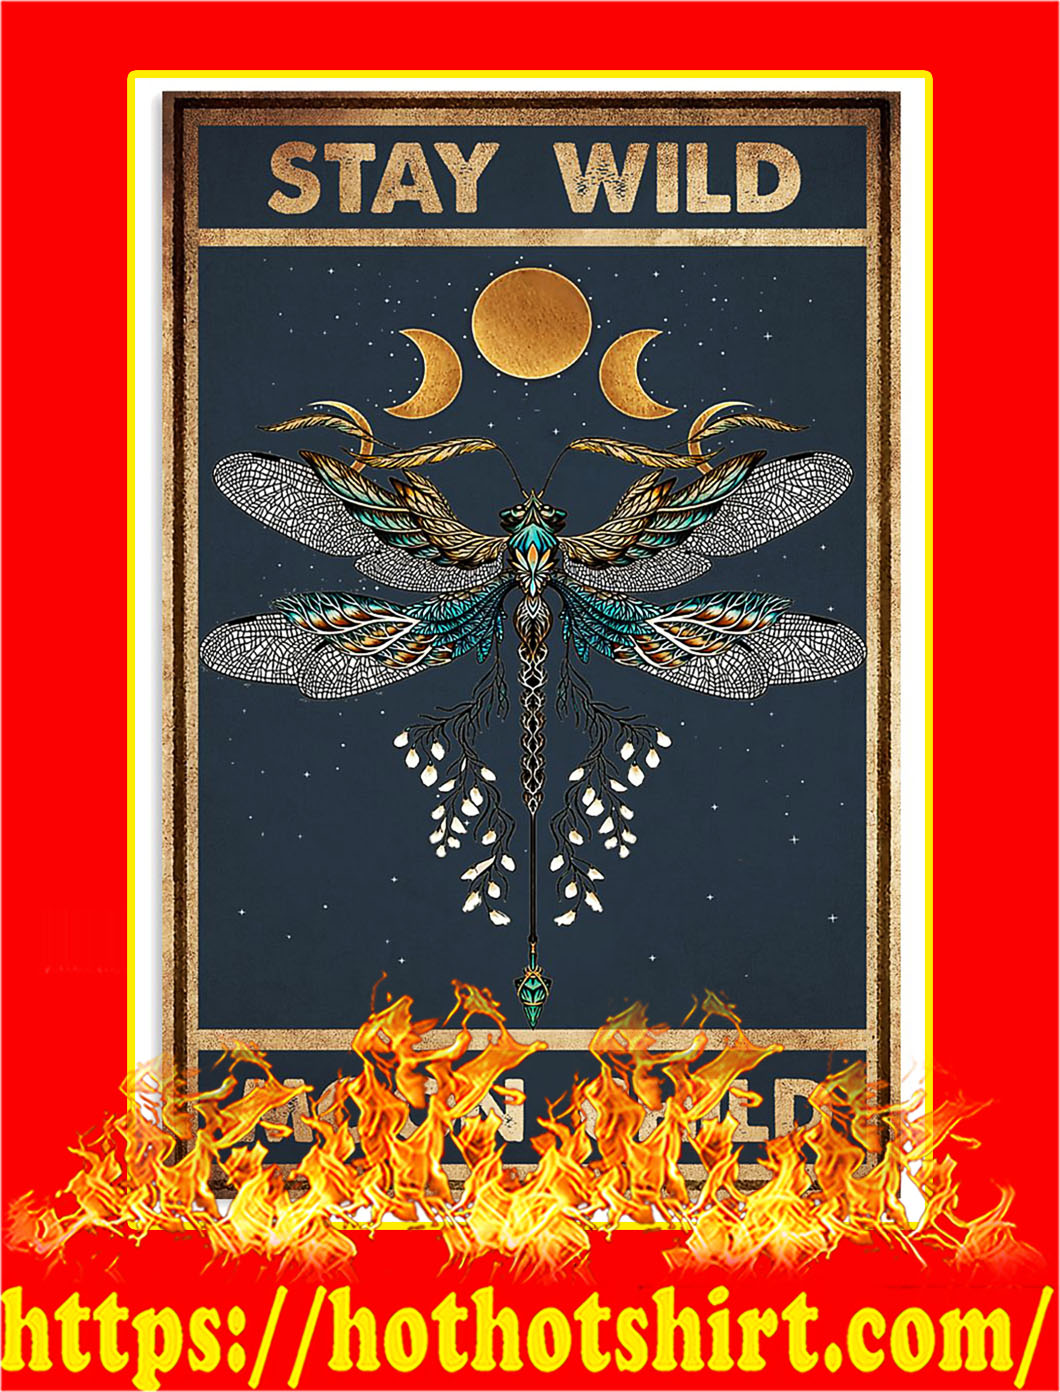 Stay wild moon child dragonfly poster - A2